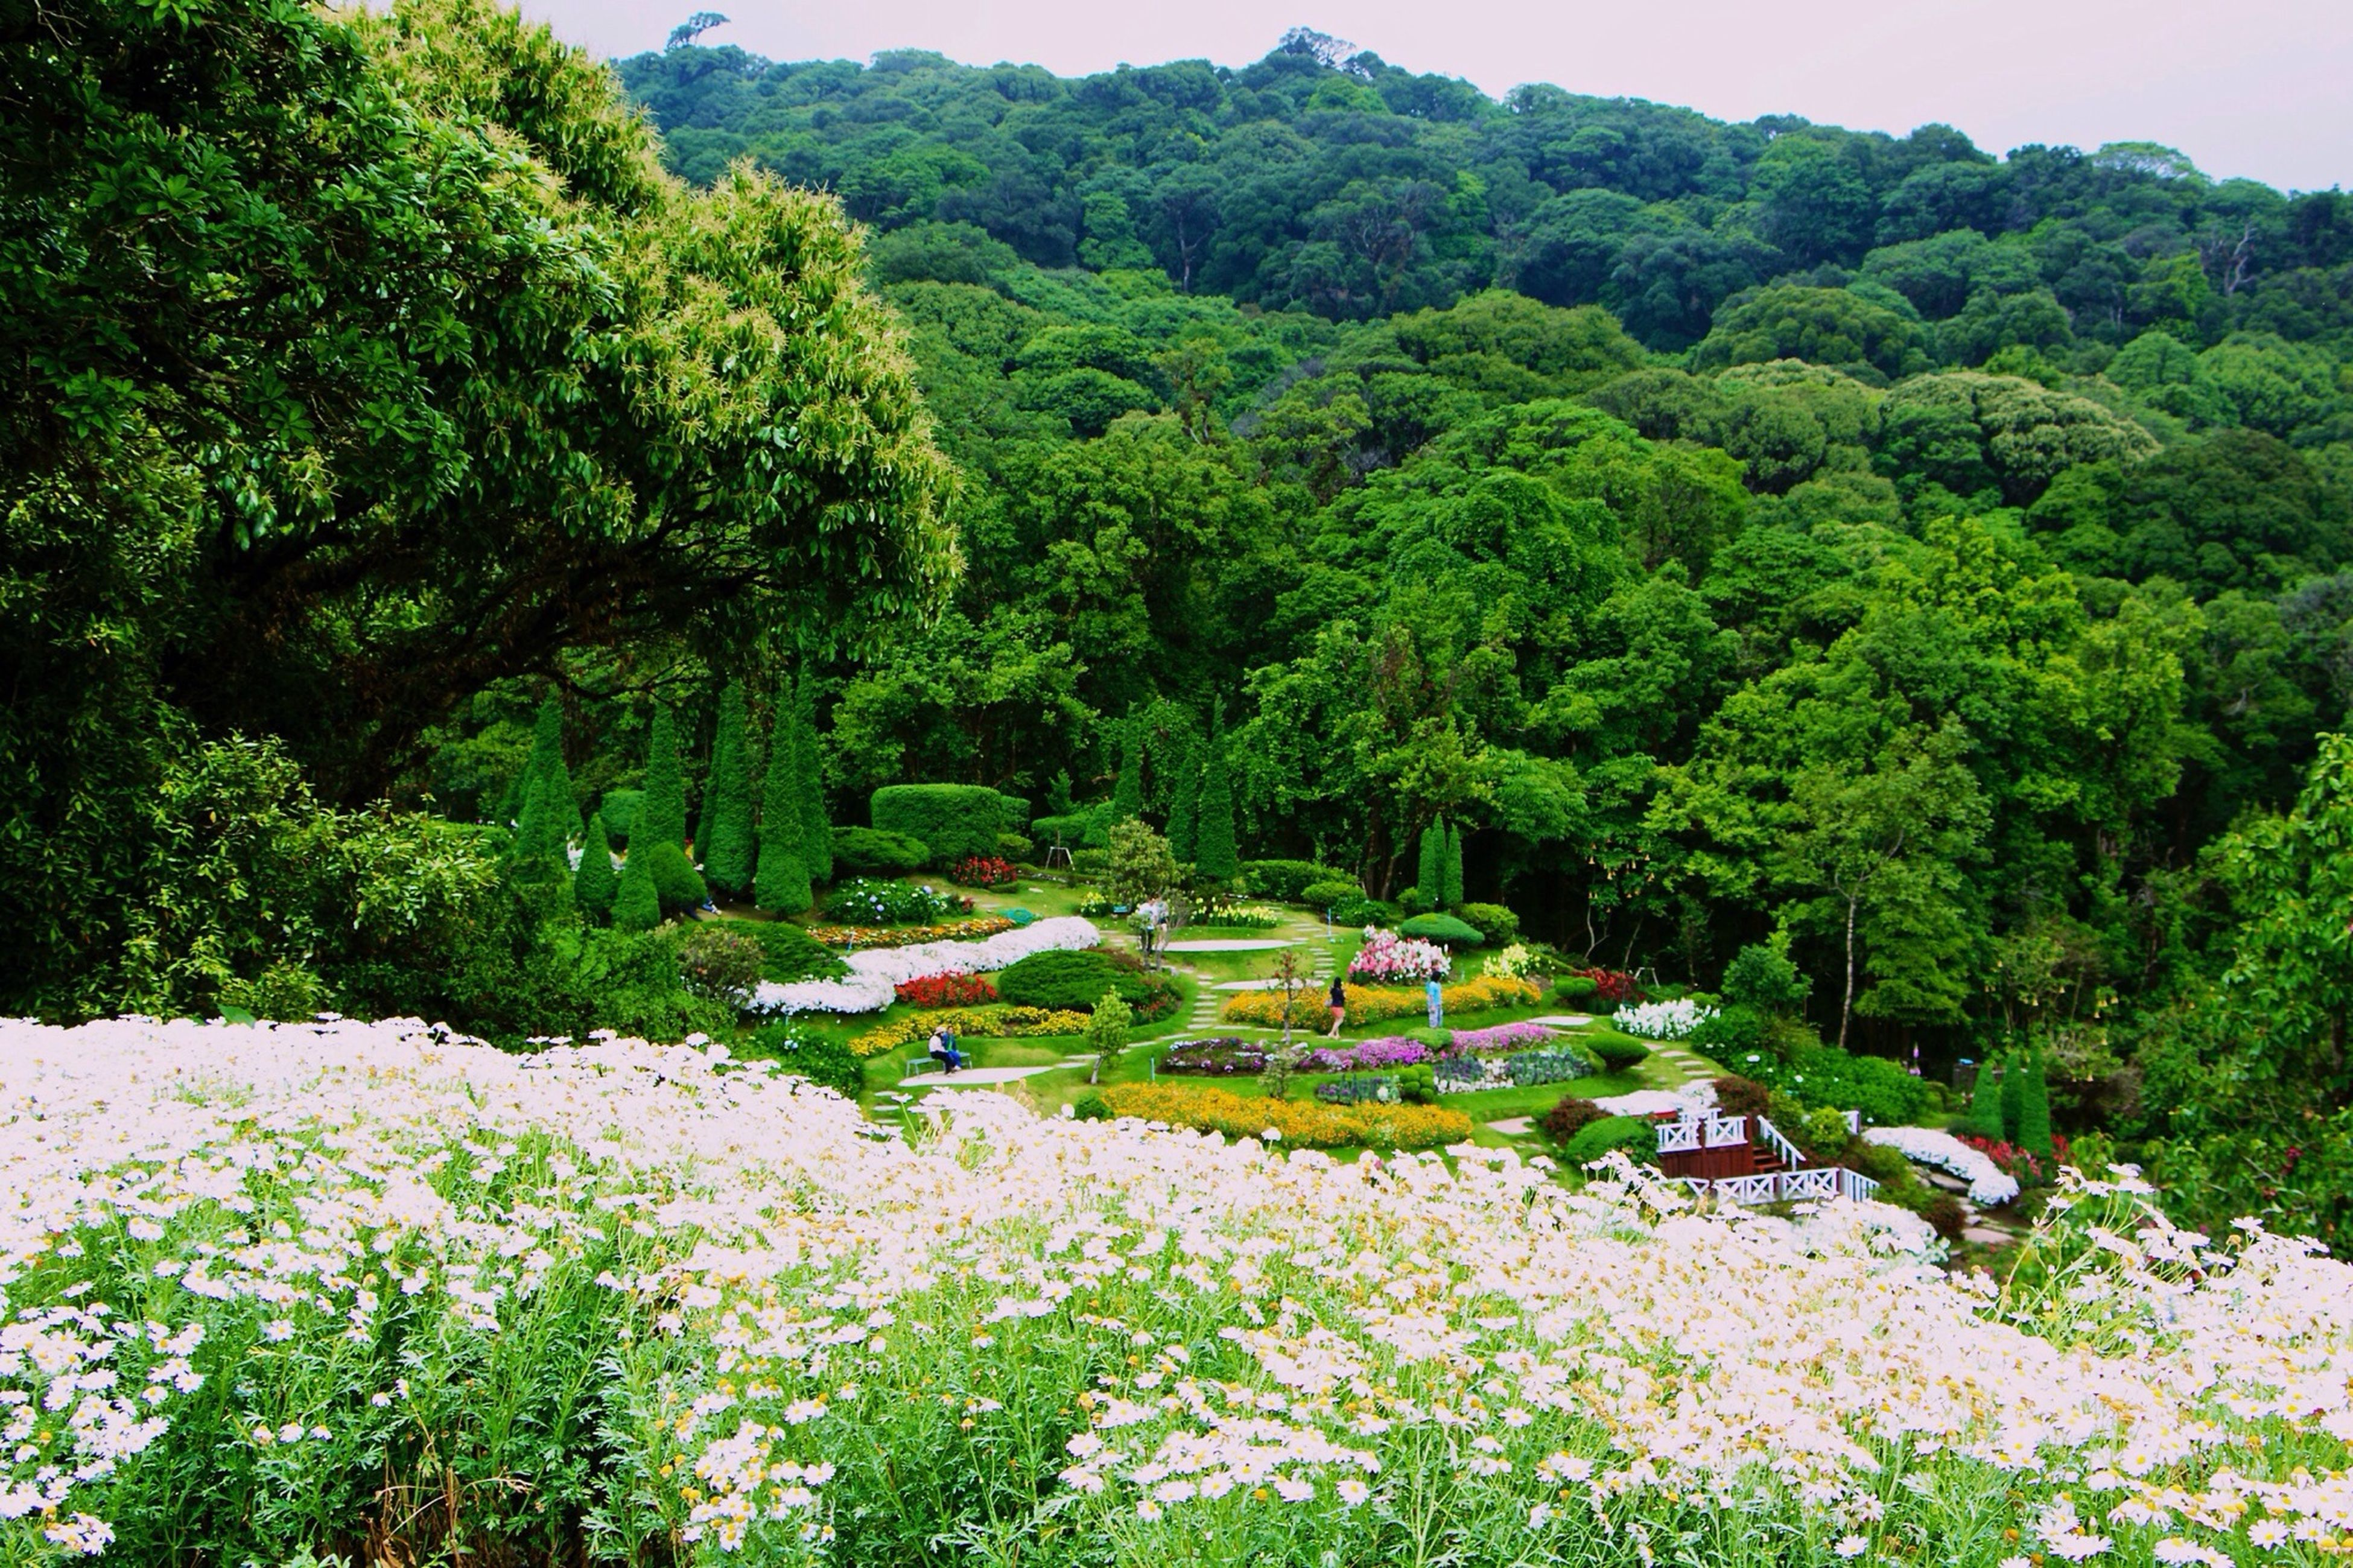 tree, flower, growth, beauty in nature, green color, nature, plant, tranquil scene, freshness, lush foliage, tranquility, scenics, landscape, high angle view, day, fragility, green, blossom, outdoors, mountain